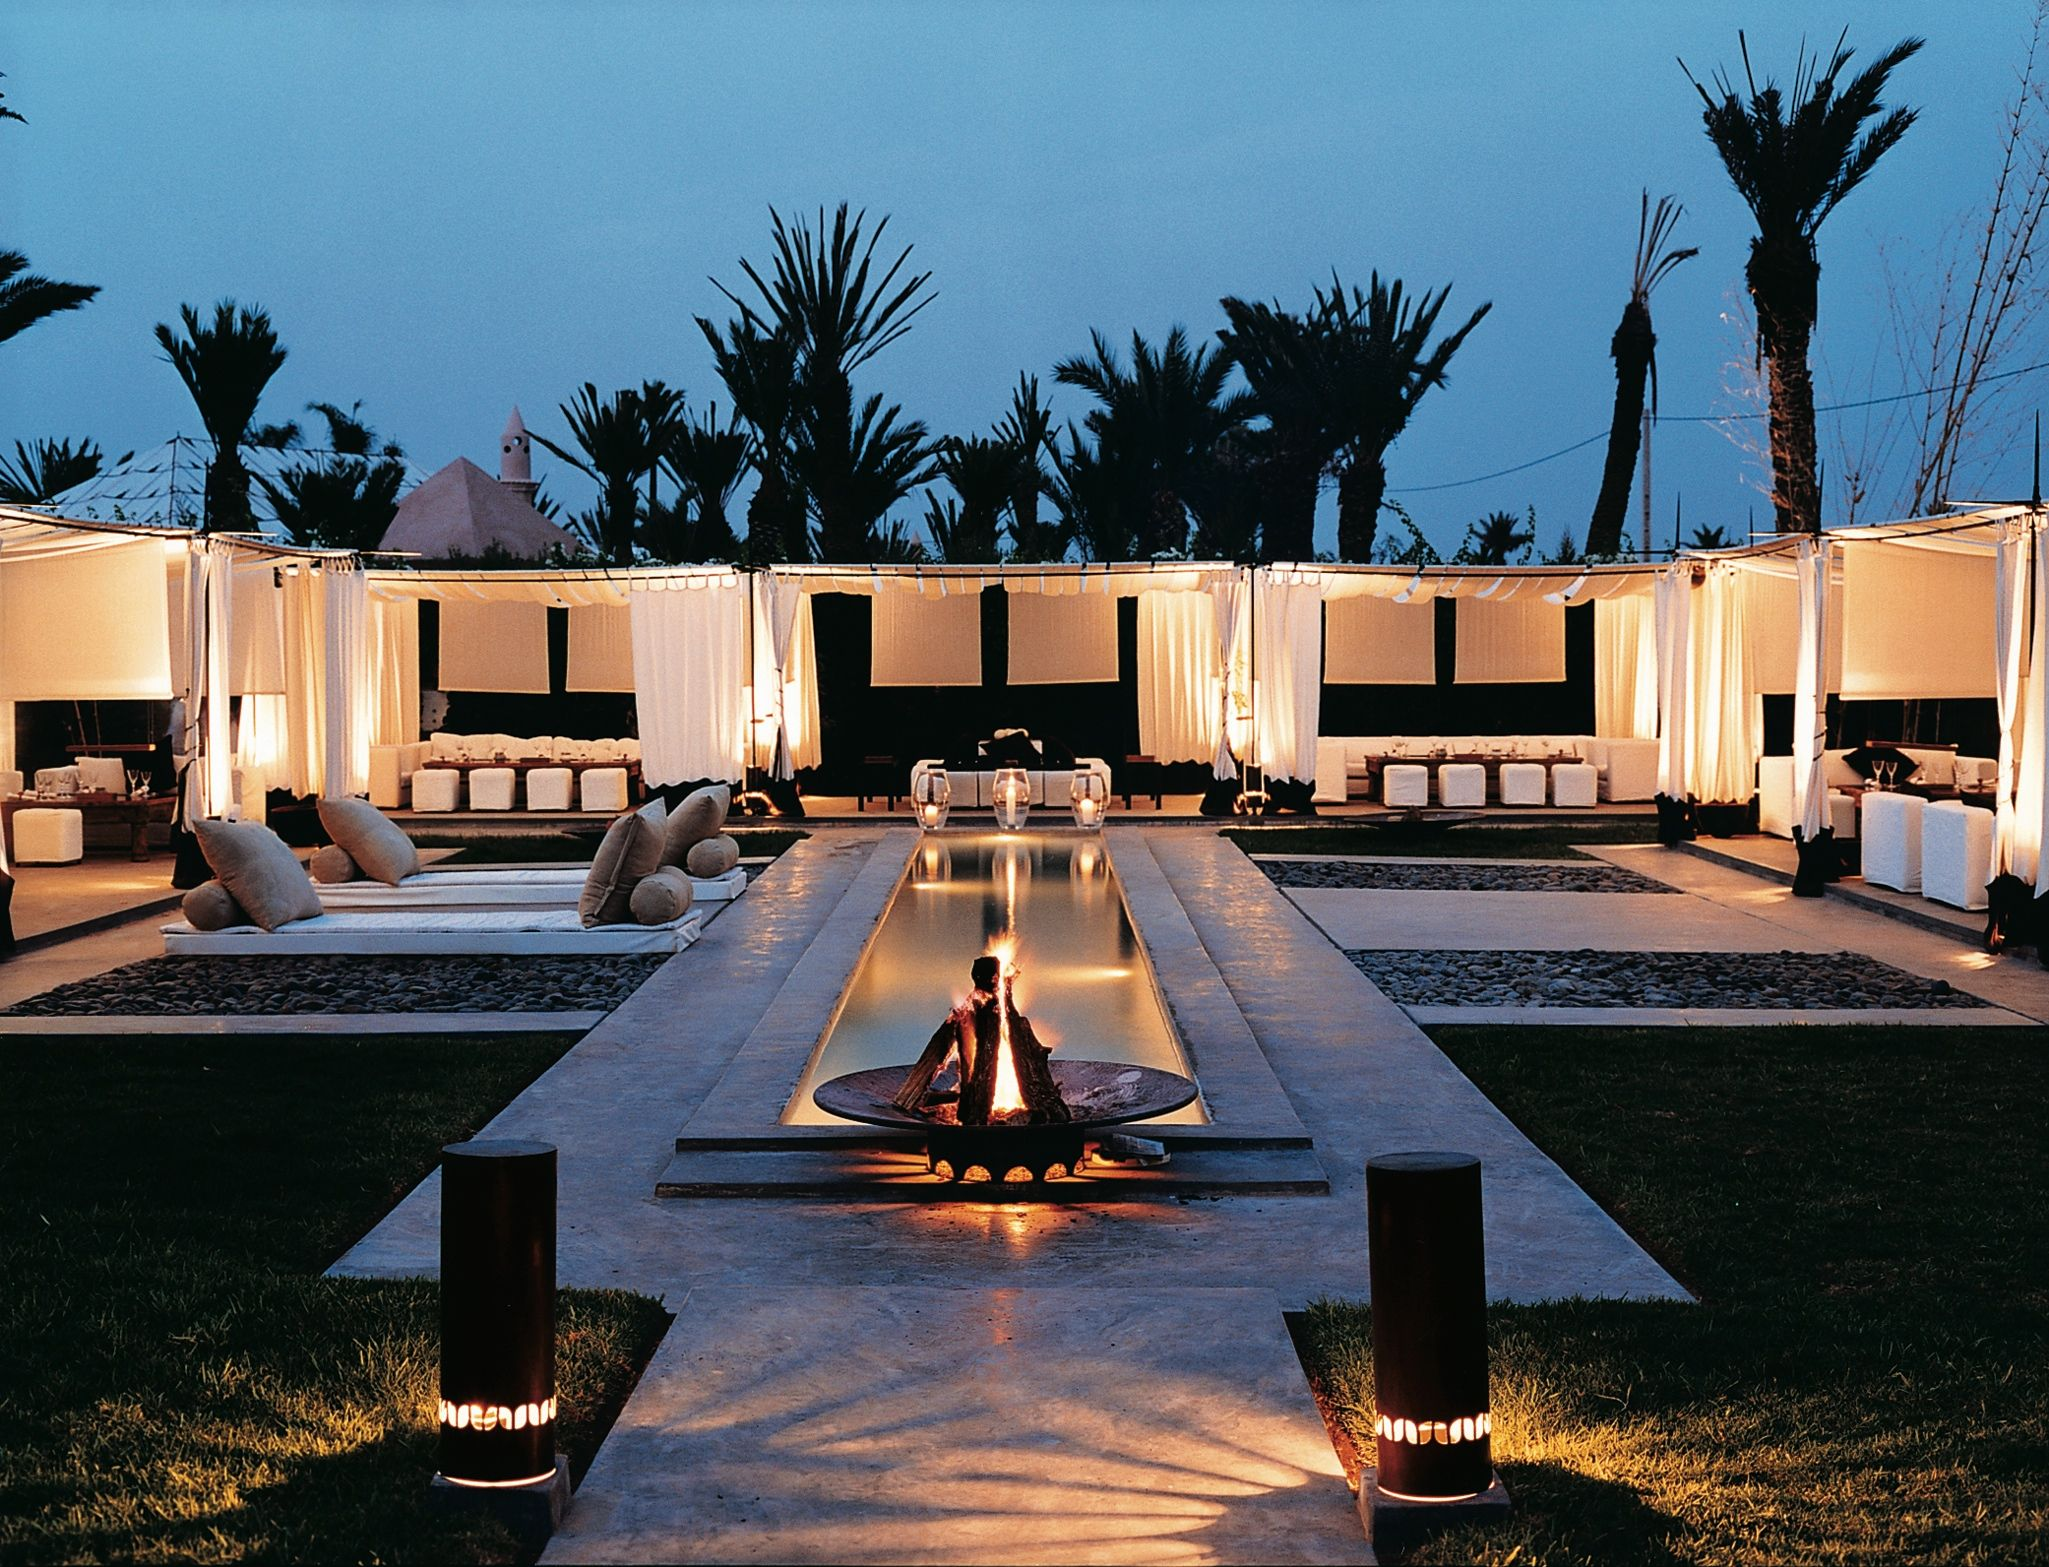 I could be sold on a destination wedding if it was this for Design hotel marrakech